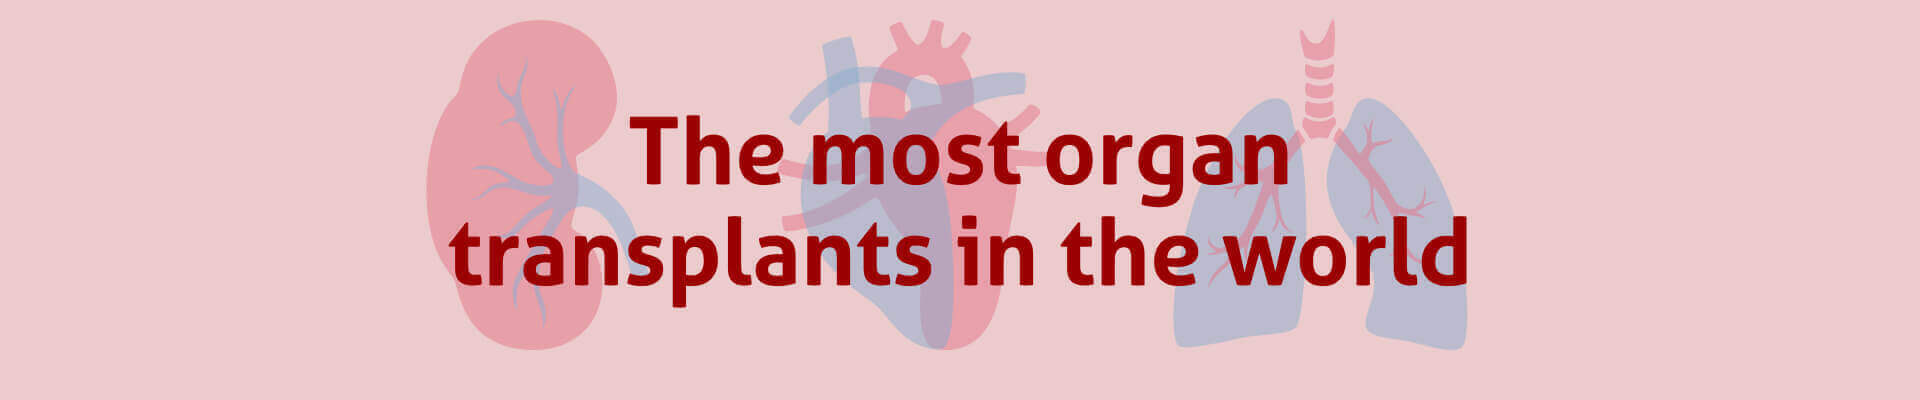 The most organ transplants in the world